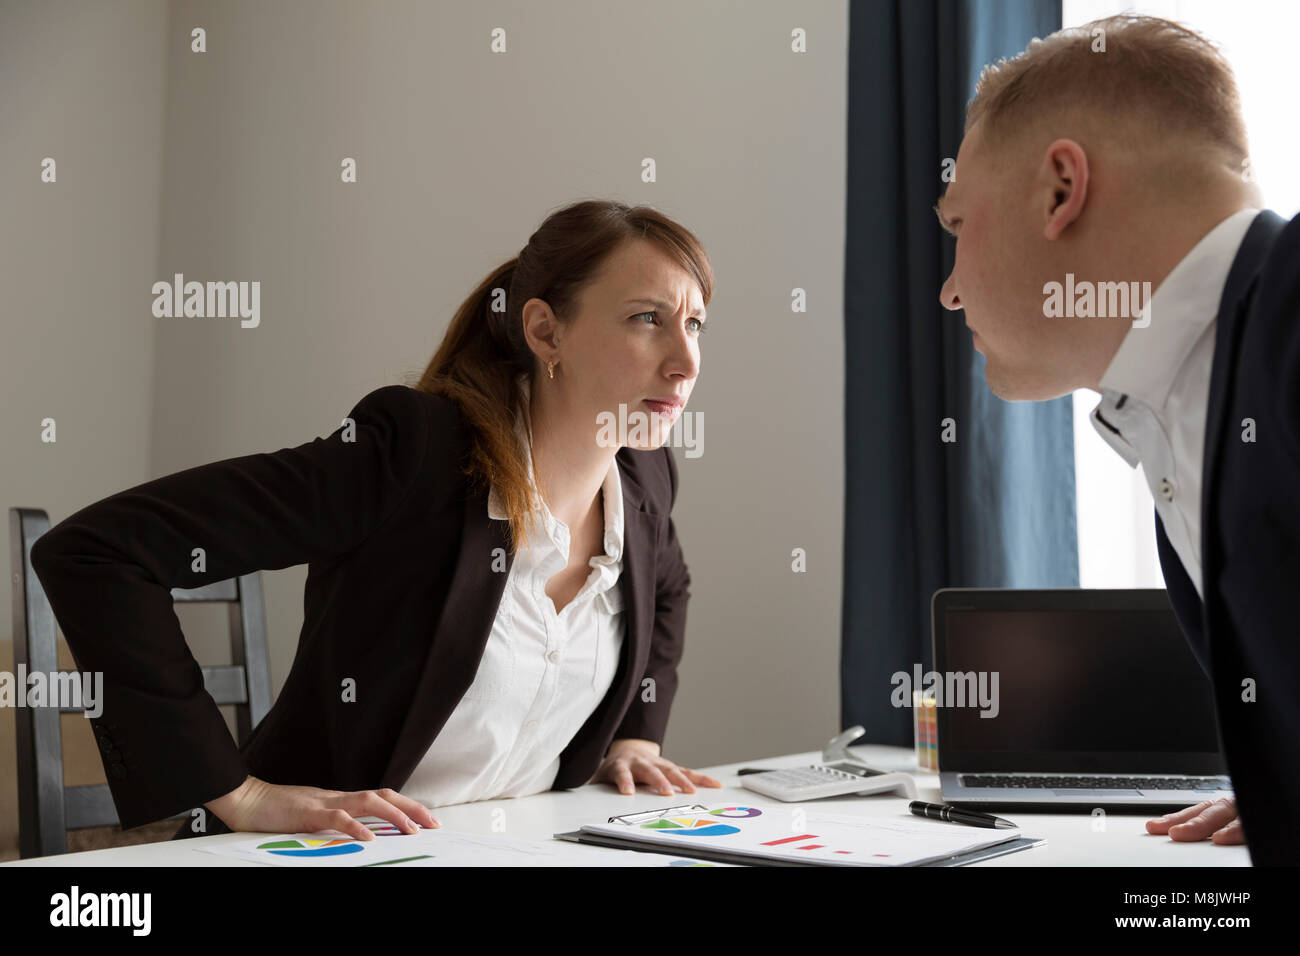 Office conflict between man and woman. Competition between men and women. Feminism concept - Stock Image